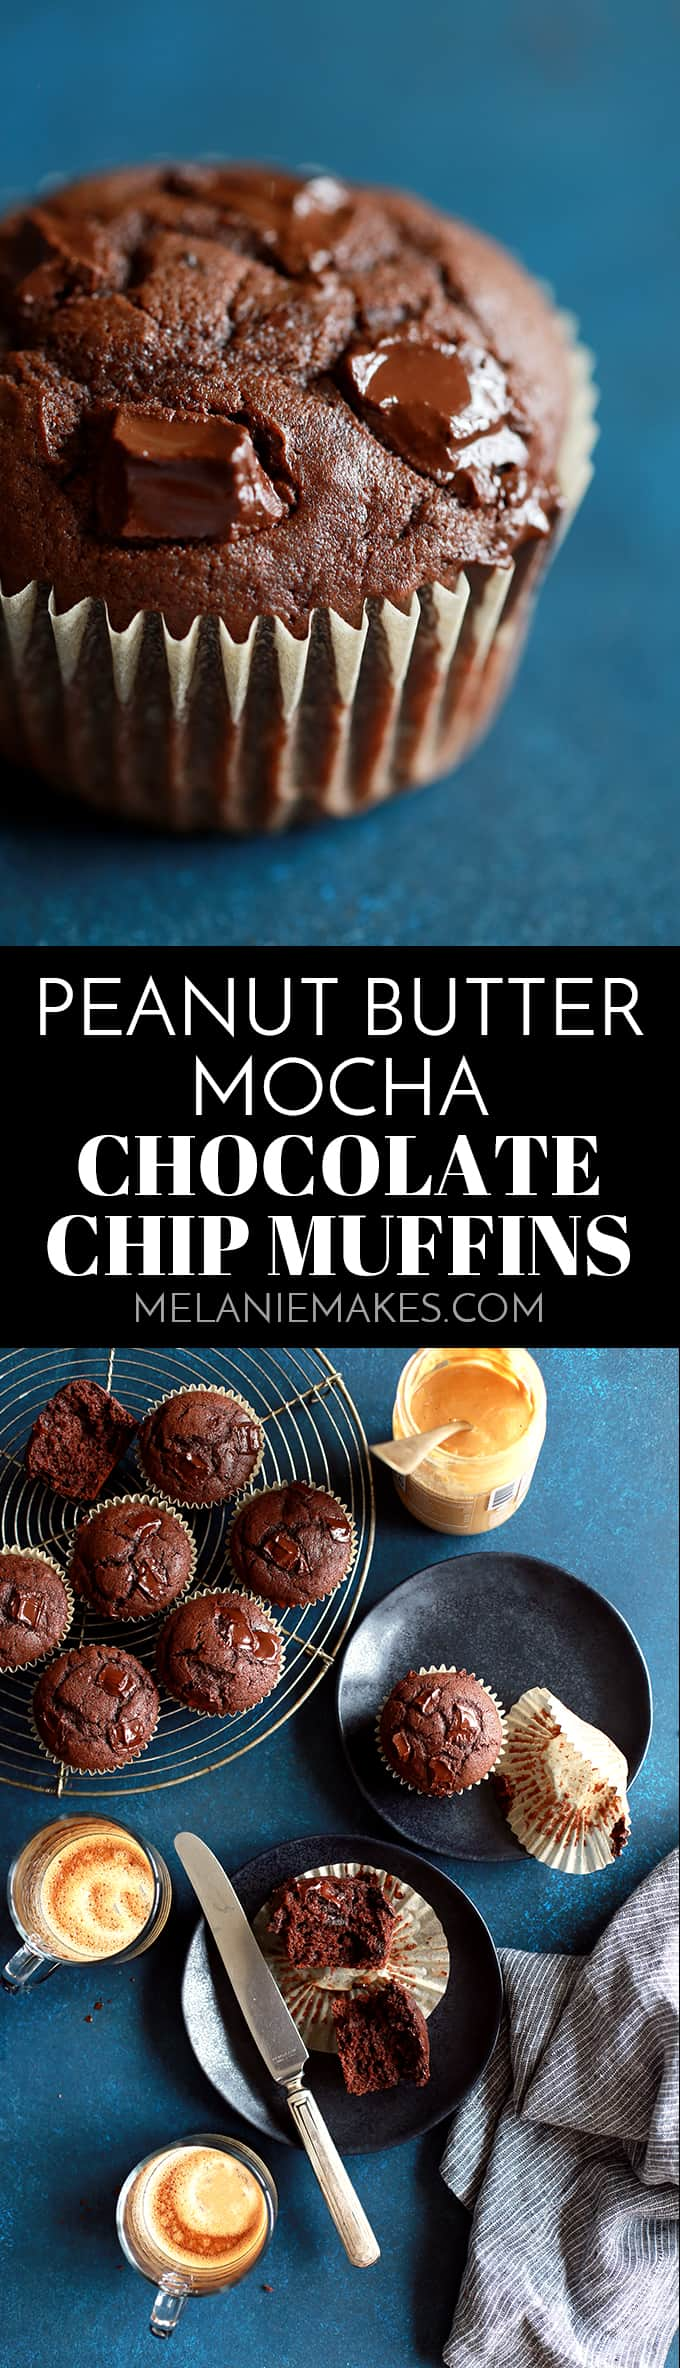 These Peanut Butter Mocha Chocolate Chip Muffins are the perfect indulgence!  A super moist peanut butter and mocha muffin studded with chocolate chips. #peanutbutter #mocha #chocolatechip #muffins #easyrecipe #breakfast